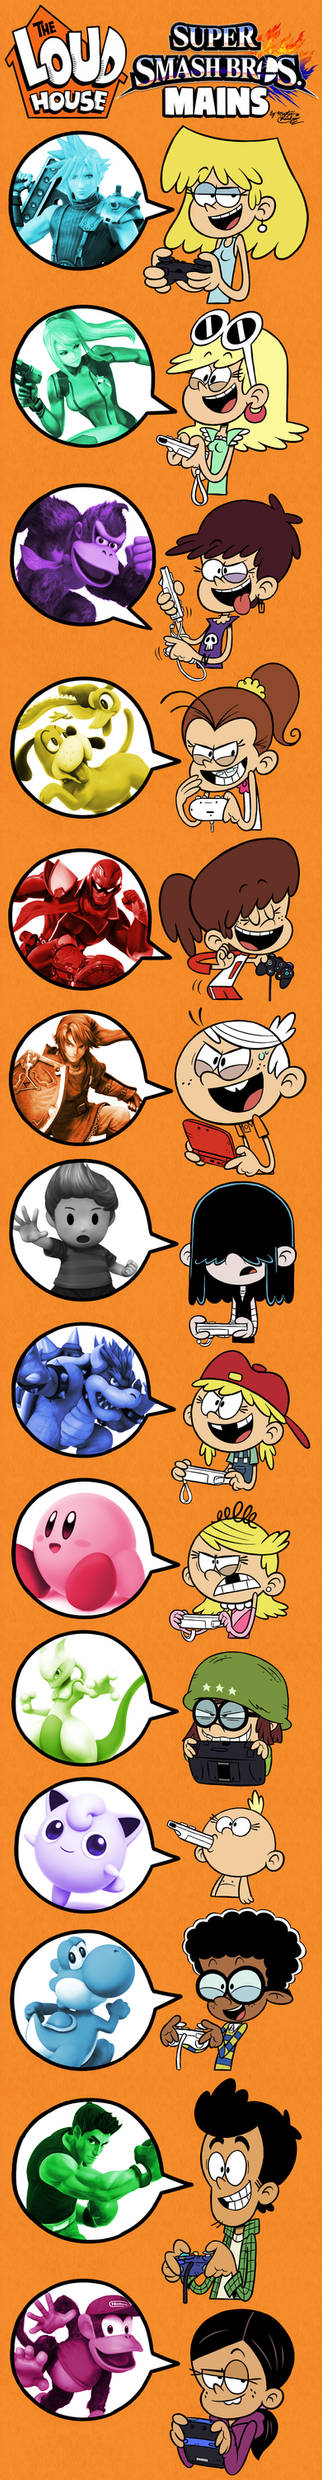 THE LOUD HOUSE and their SMASH BROS. Mains!